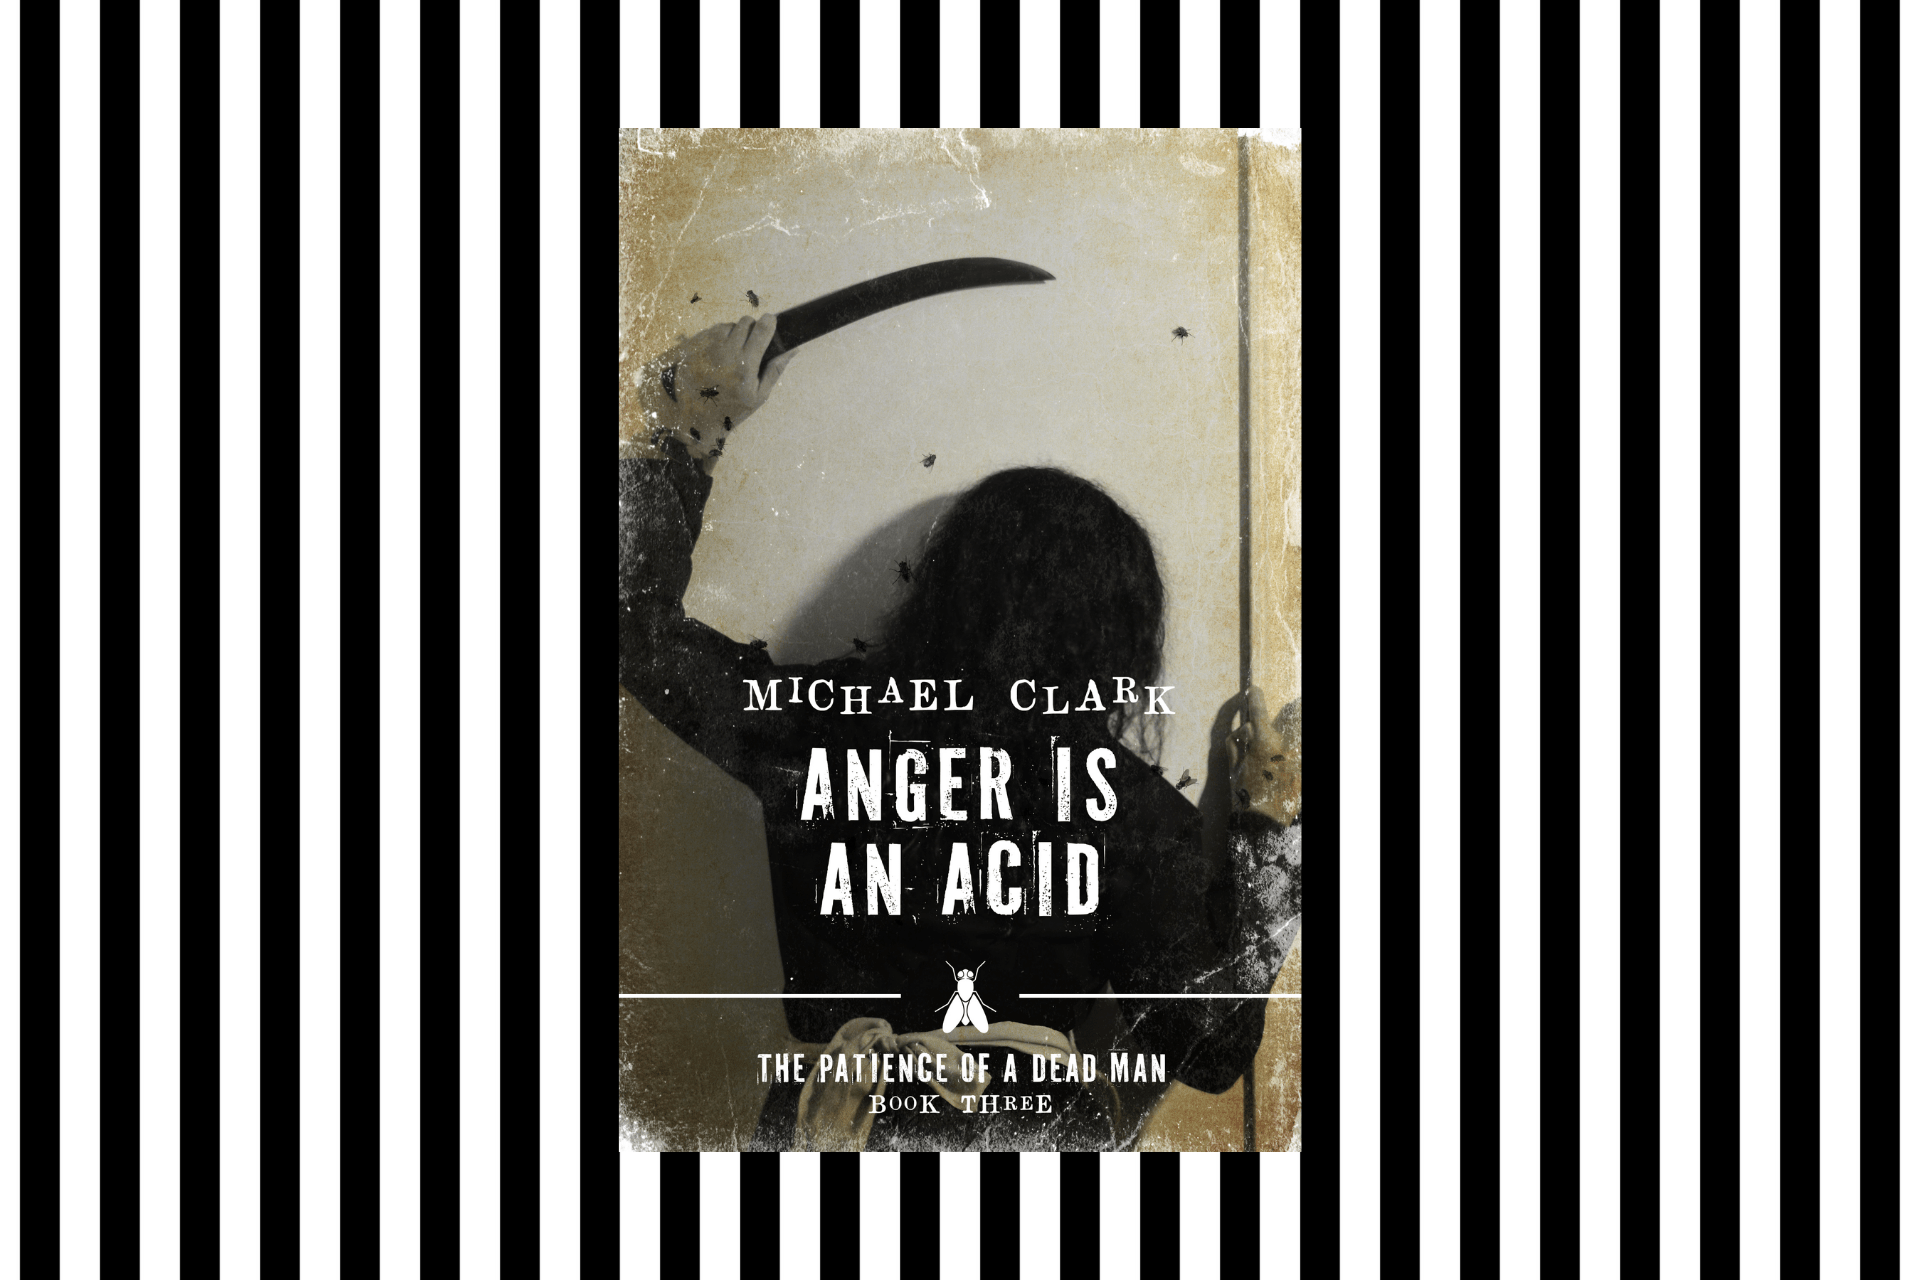 The cover of Anger is an Acid by Michael Clark